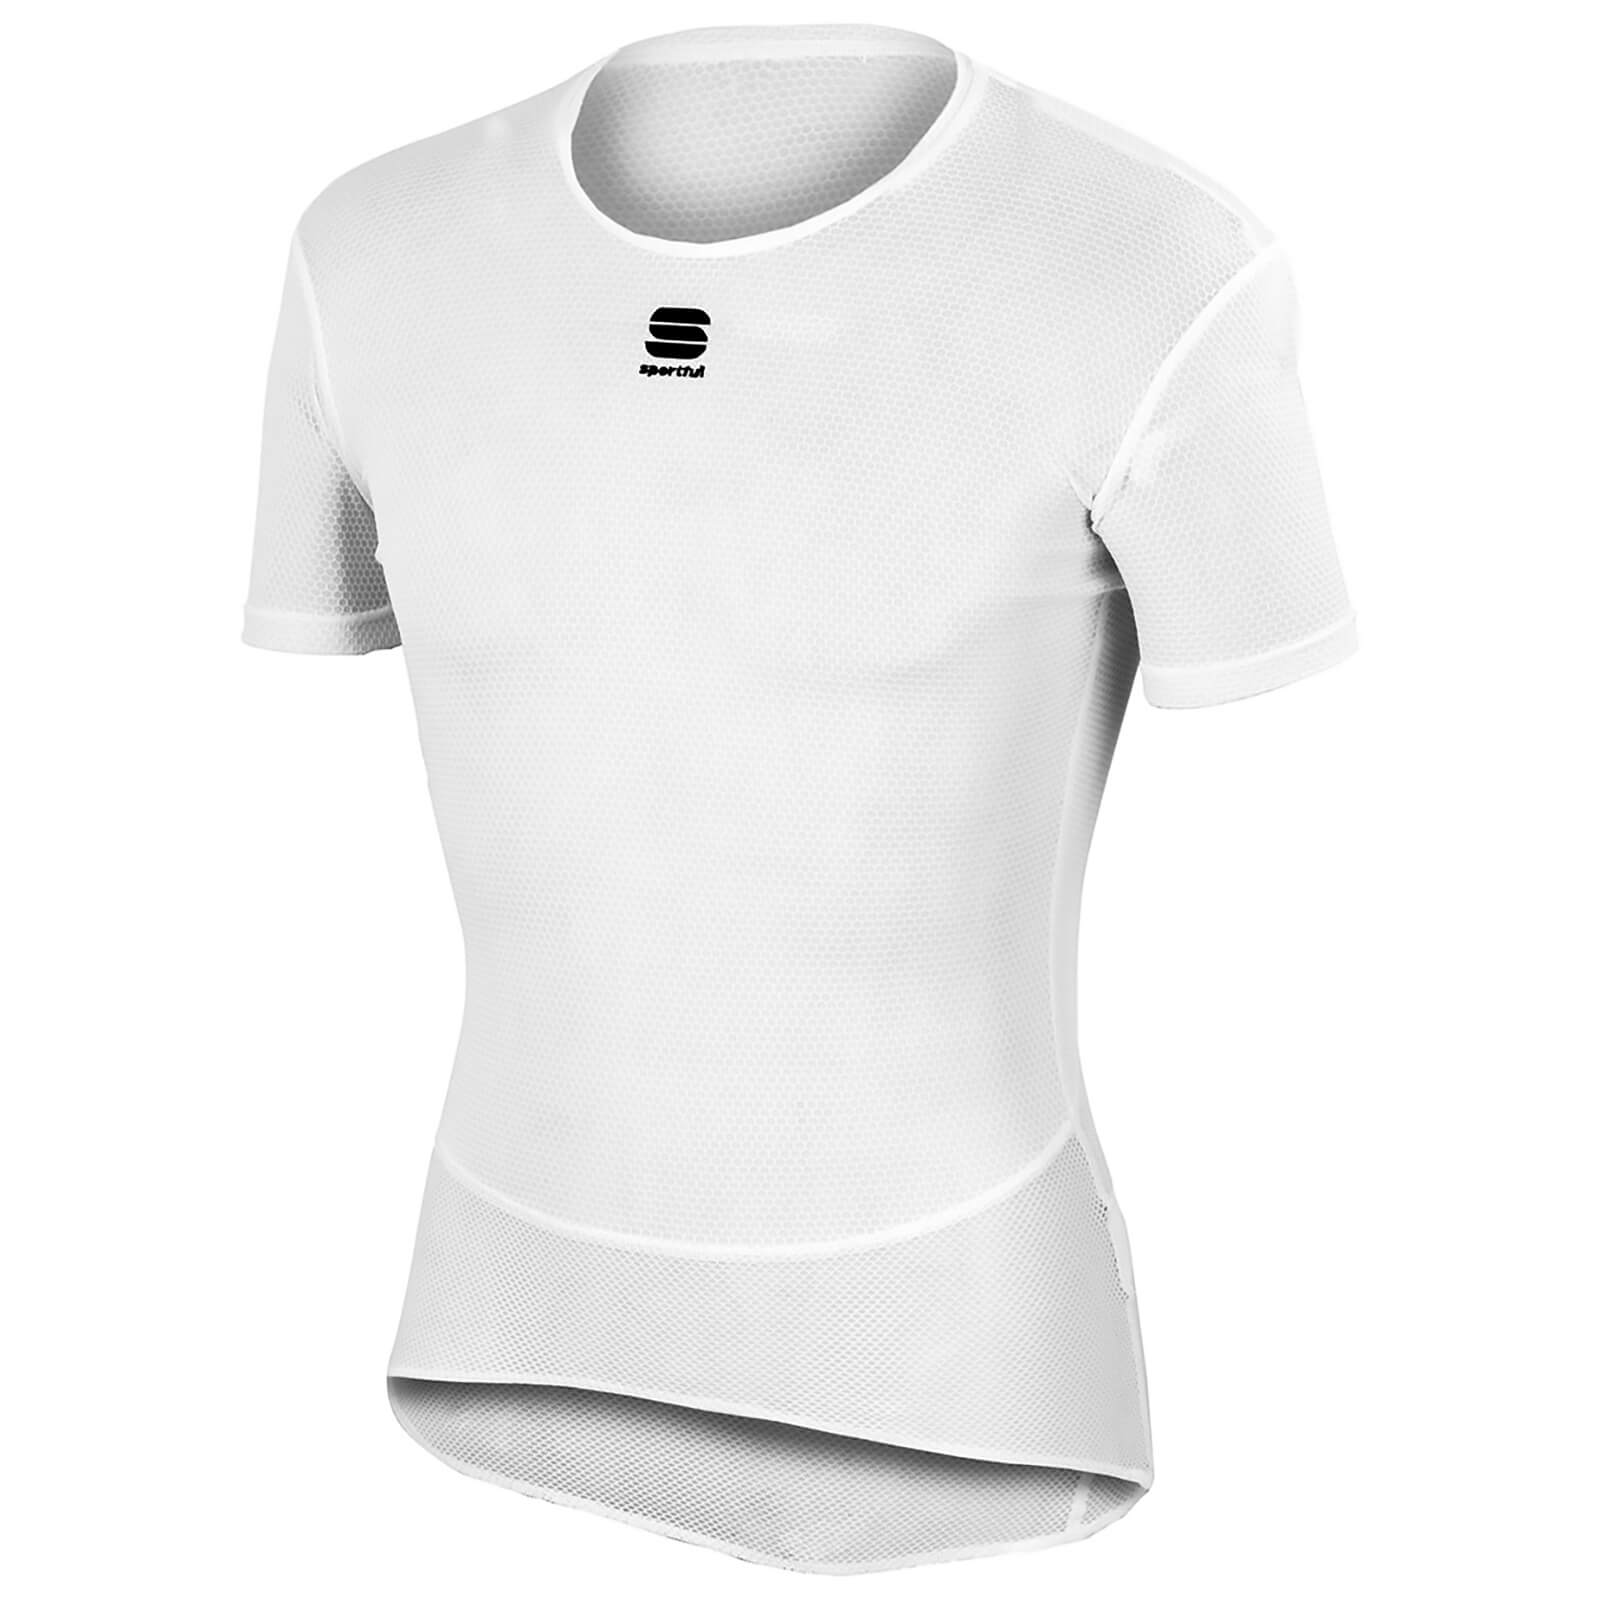 Sportful BodyFit Pro T-Shirt Baselayer - White